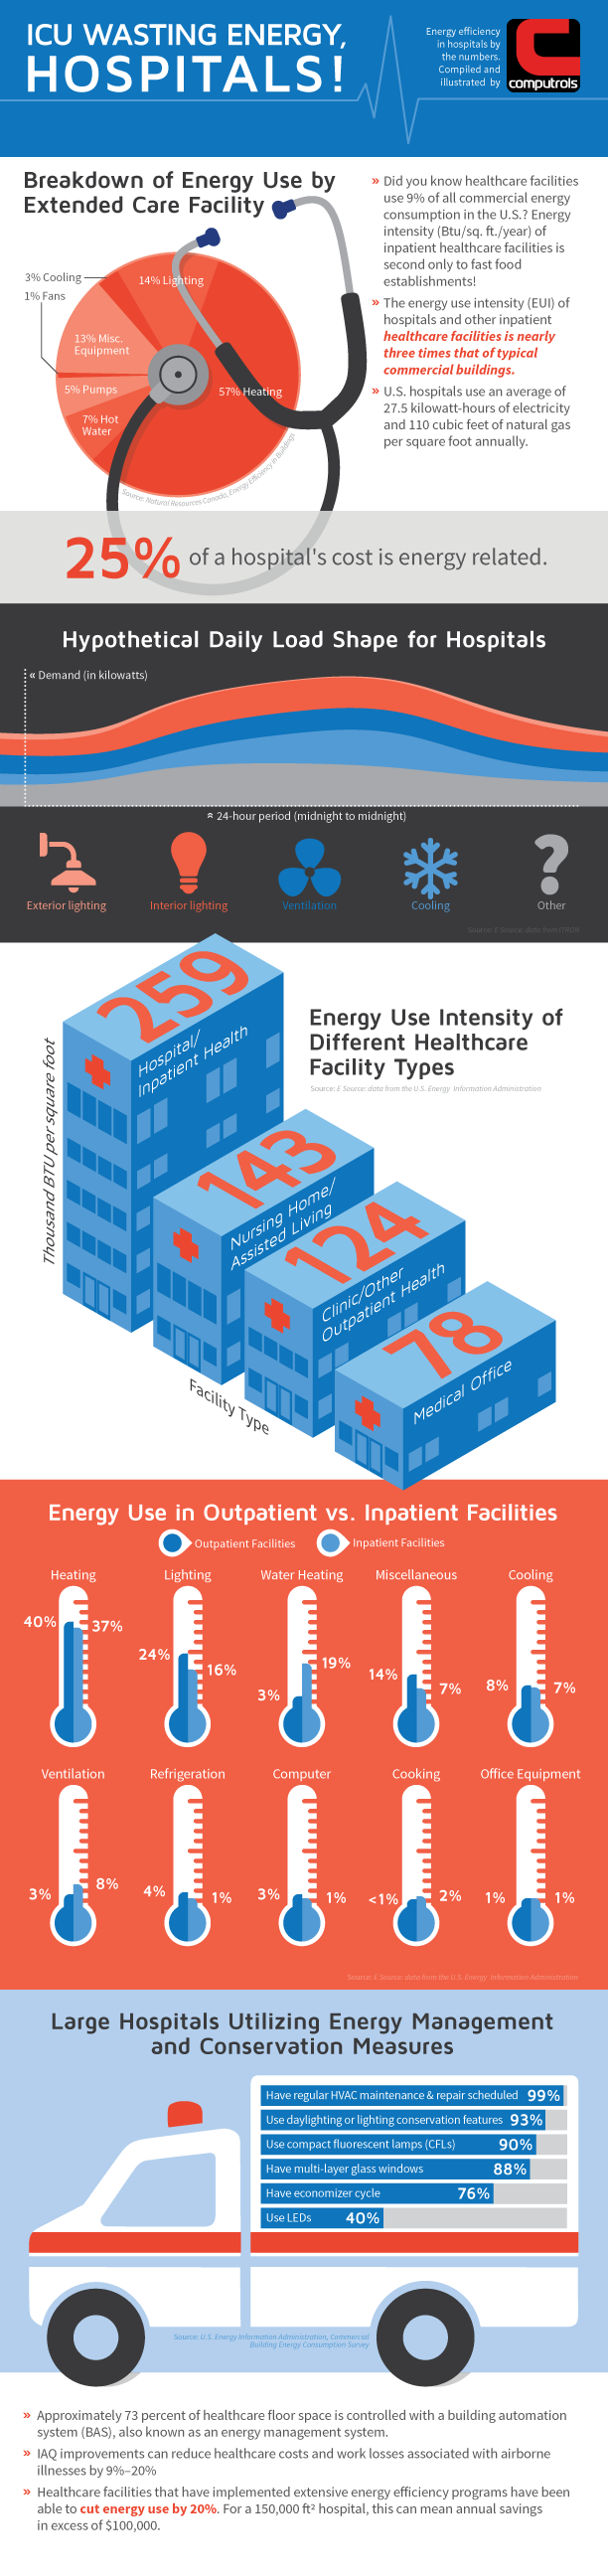 Hospital Energy Use Infographic